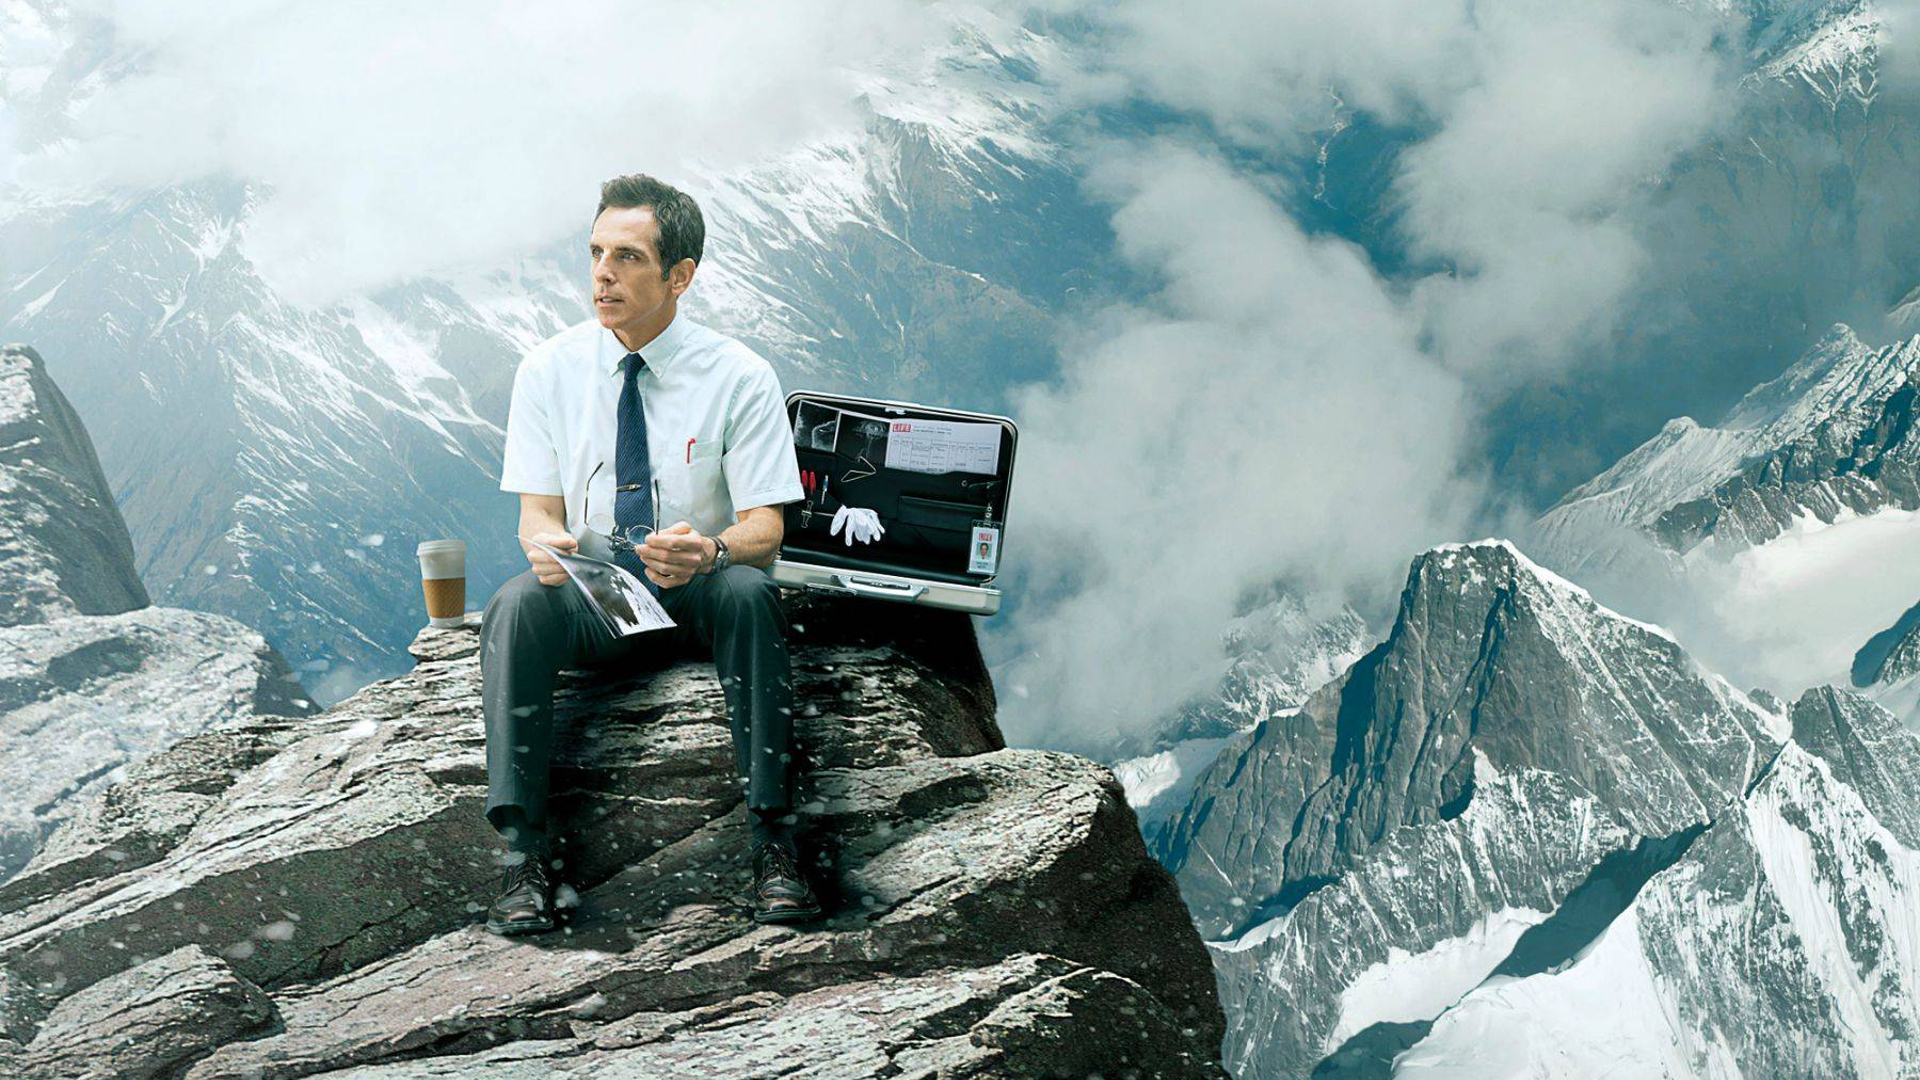 The secret life of walter mitty free ebook reader